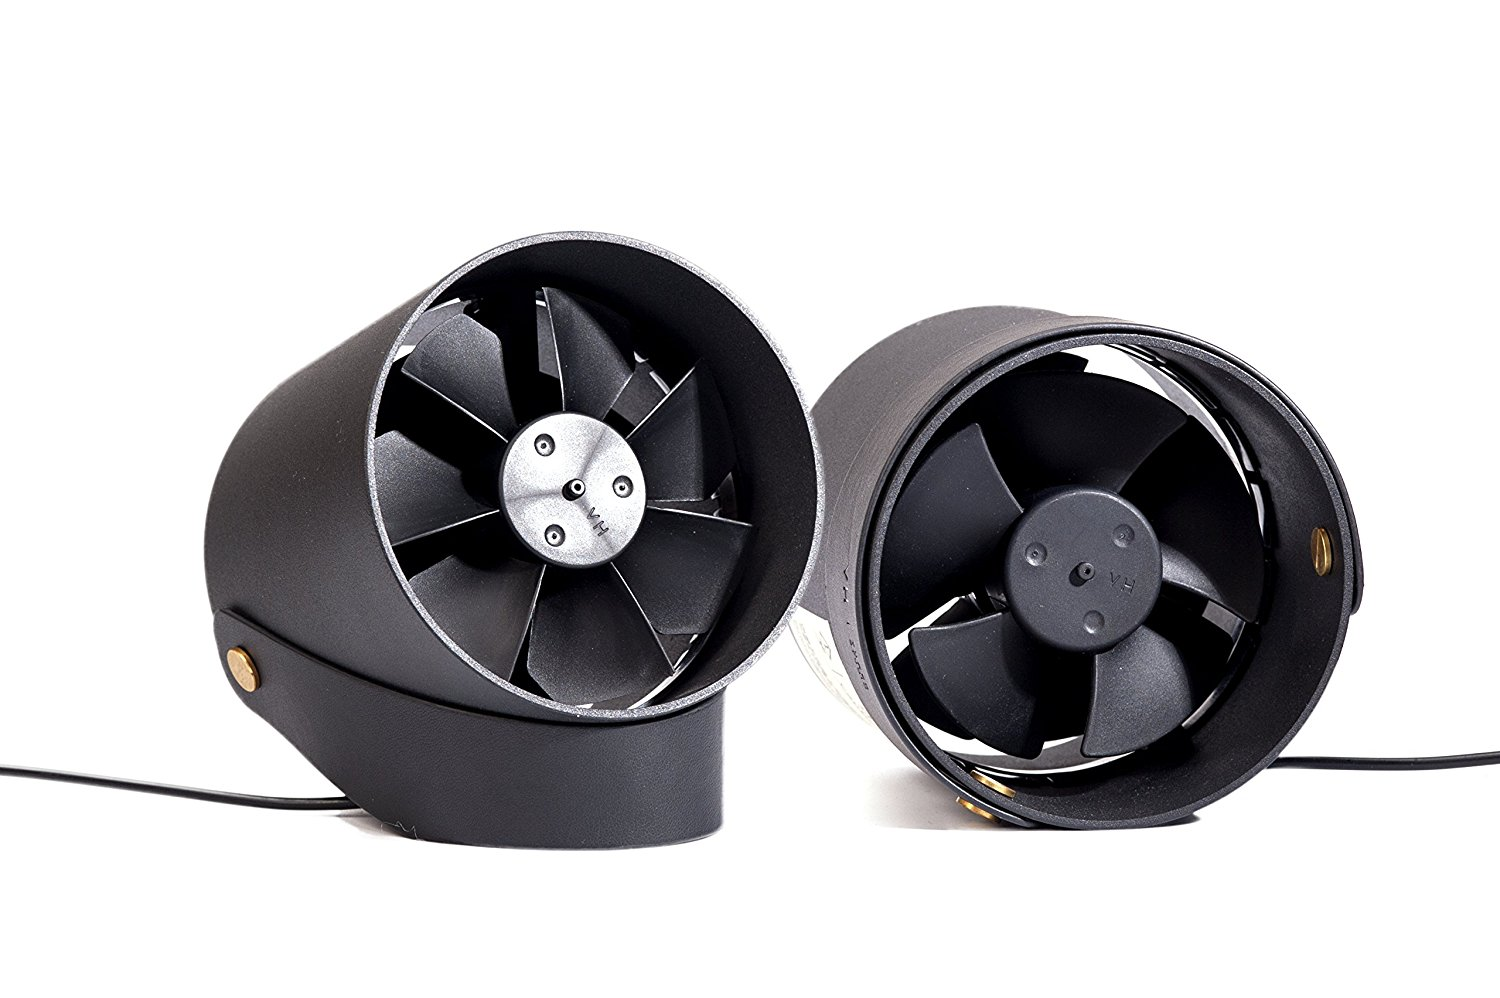 d couverte du ventilateur usb de bureau oroshi smart quiet. Black Bedroom Furniture Sets. Home Design Ideas